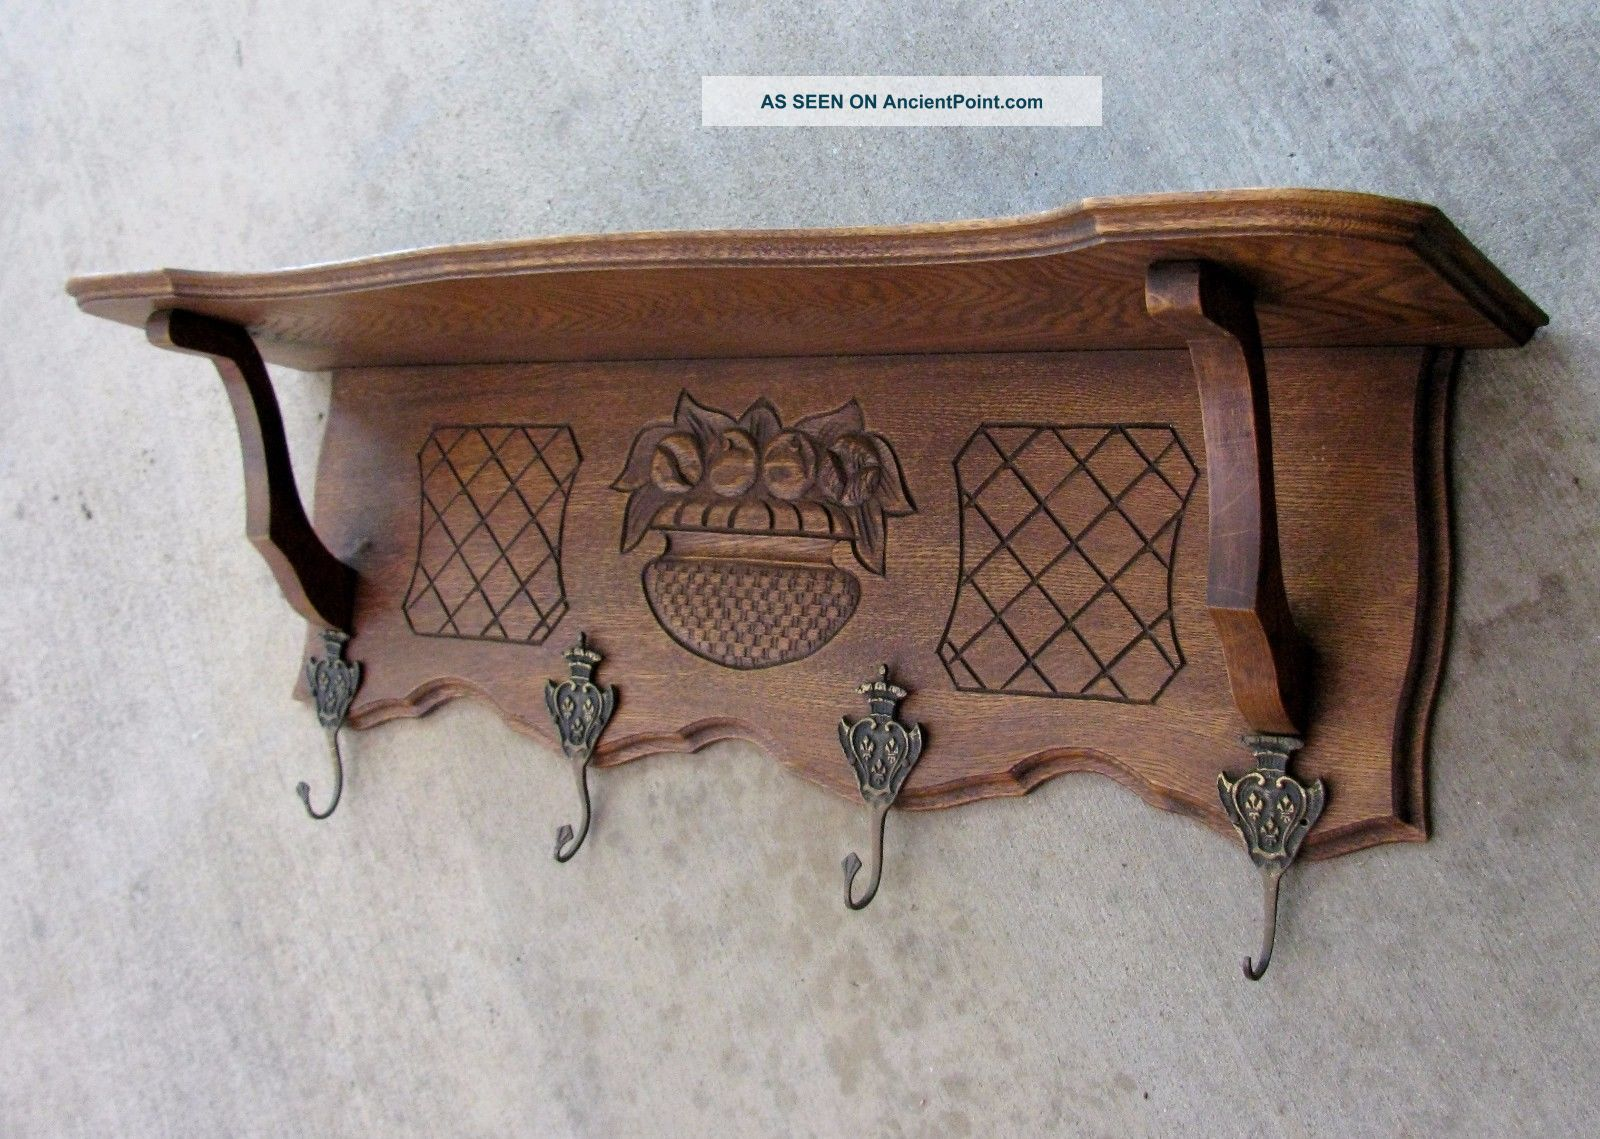 Antique French Carved Oak Wall Shelf Plate Coat Rack Copper Pot Scalloped 1900-1950 photo